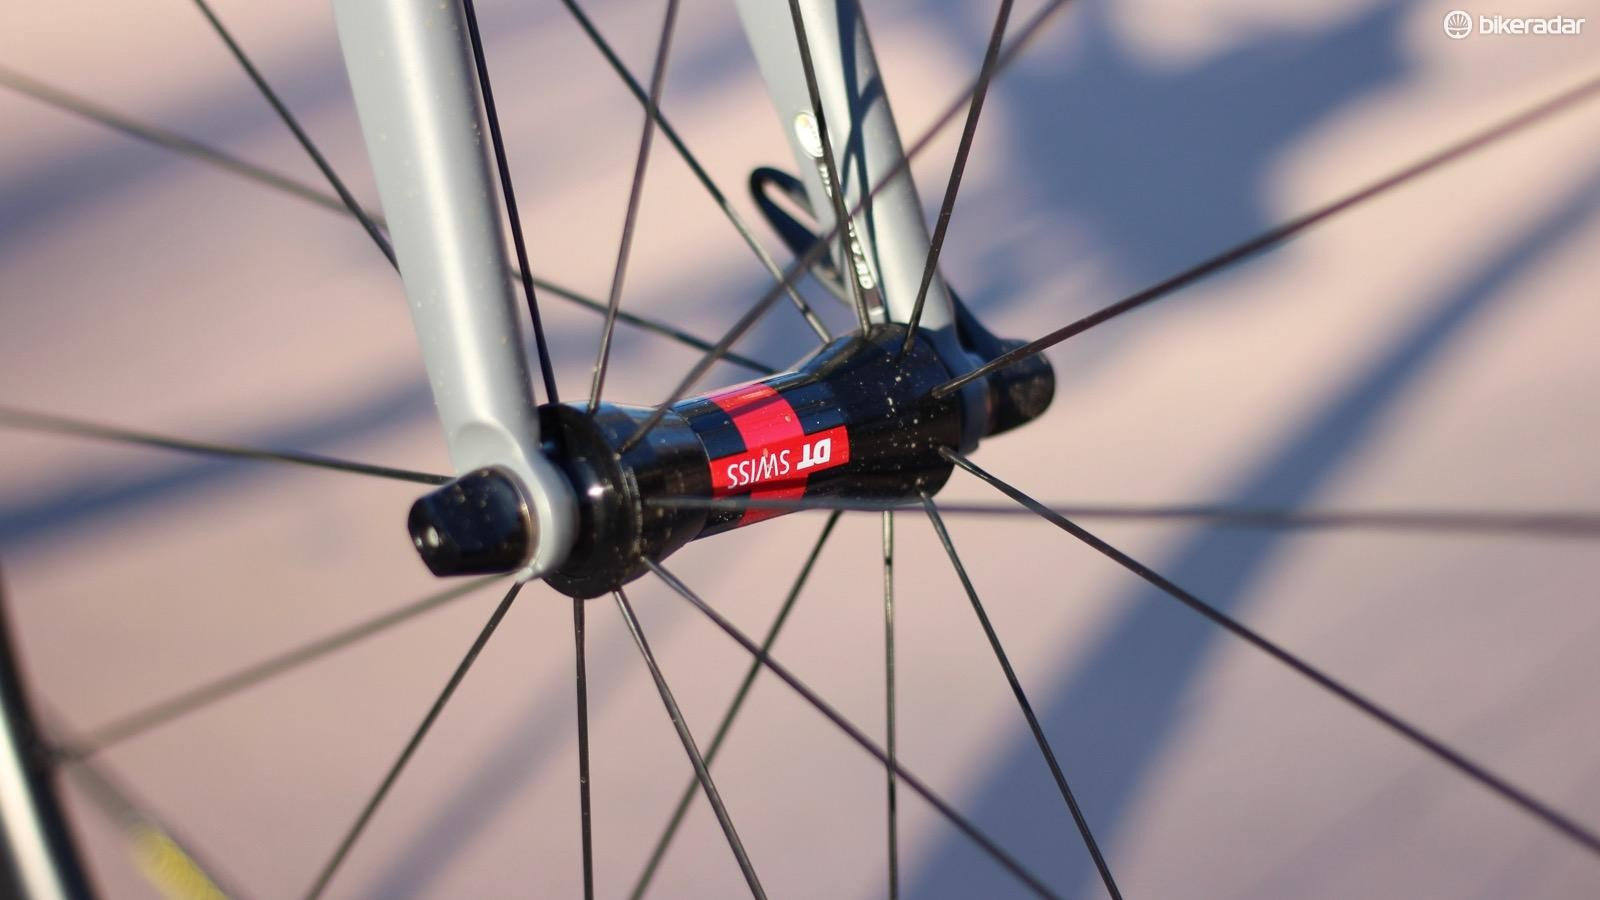 For 2017, Ridley is using DT Swiss hubs on its house wheels